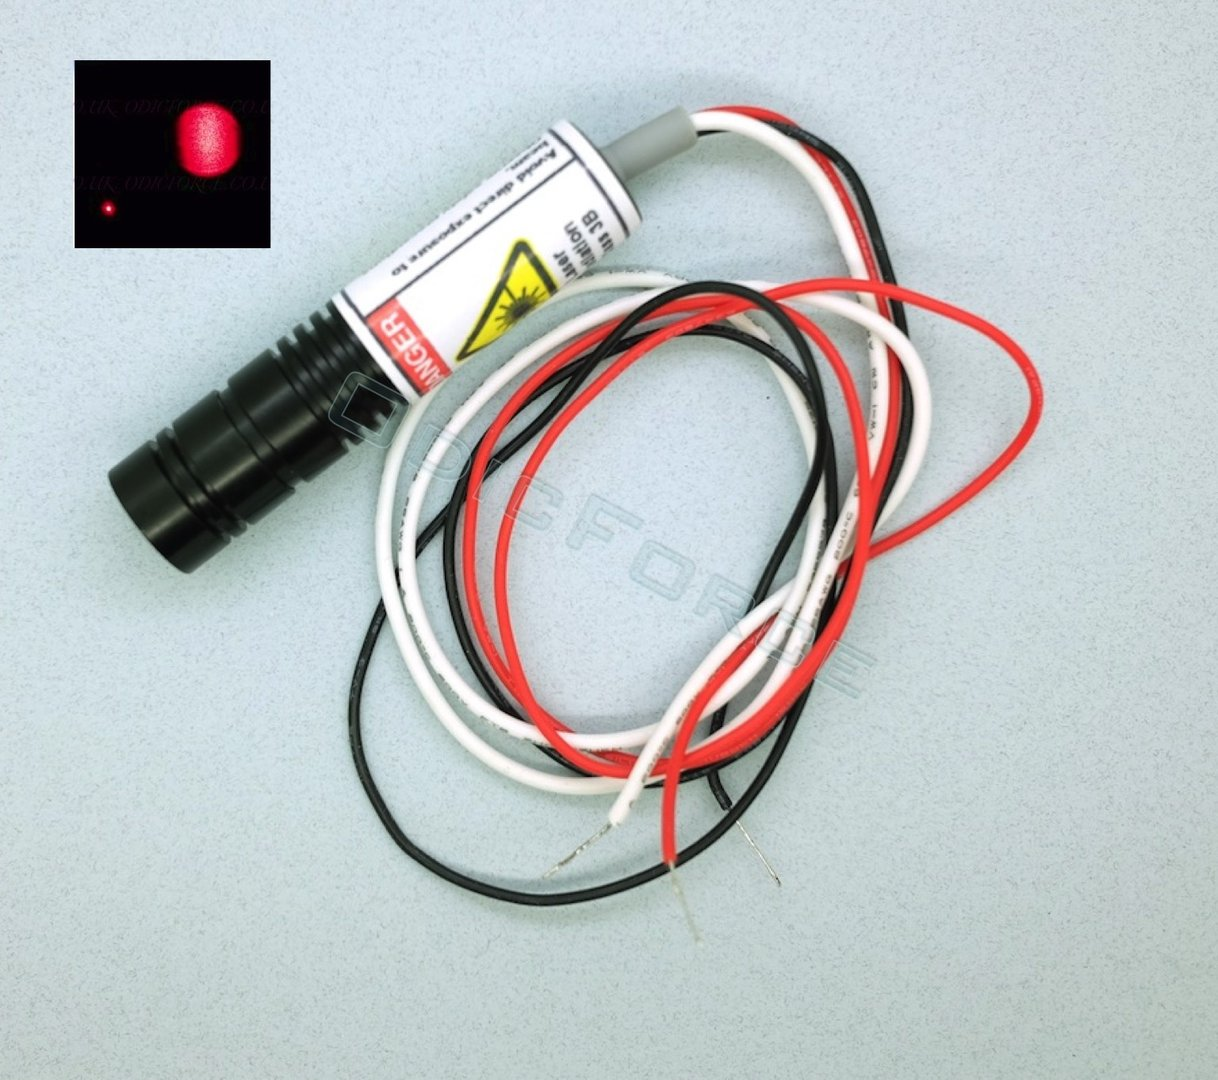 200mW Red (650nm) Laser Diode Module with Built-in 5V Driver, TTL Modulation (16mm)